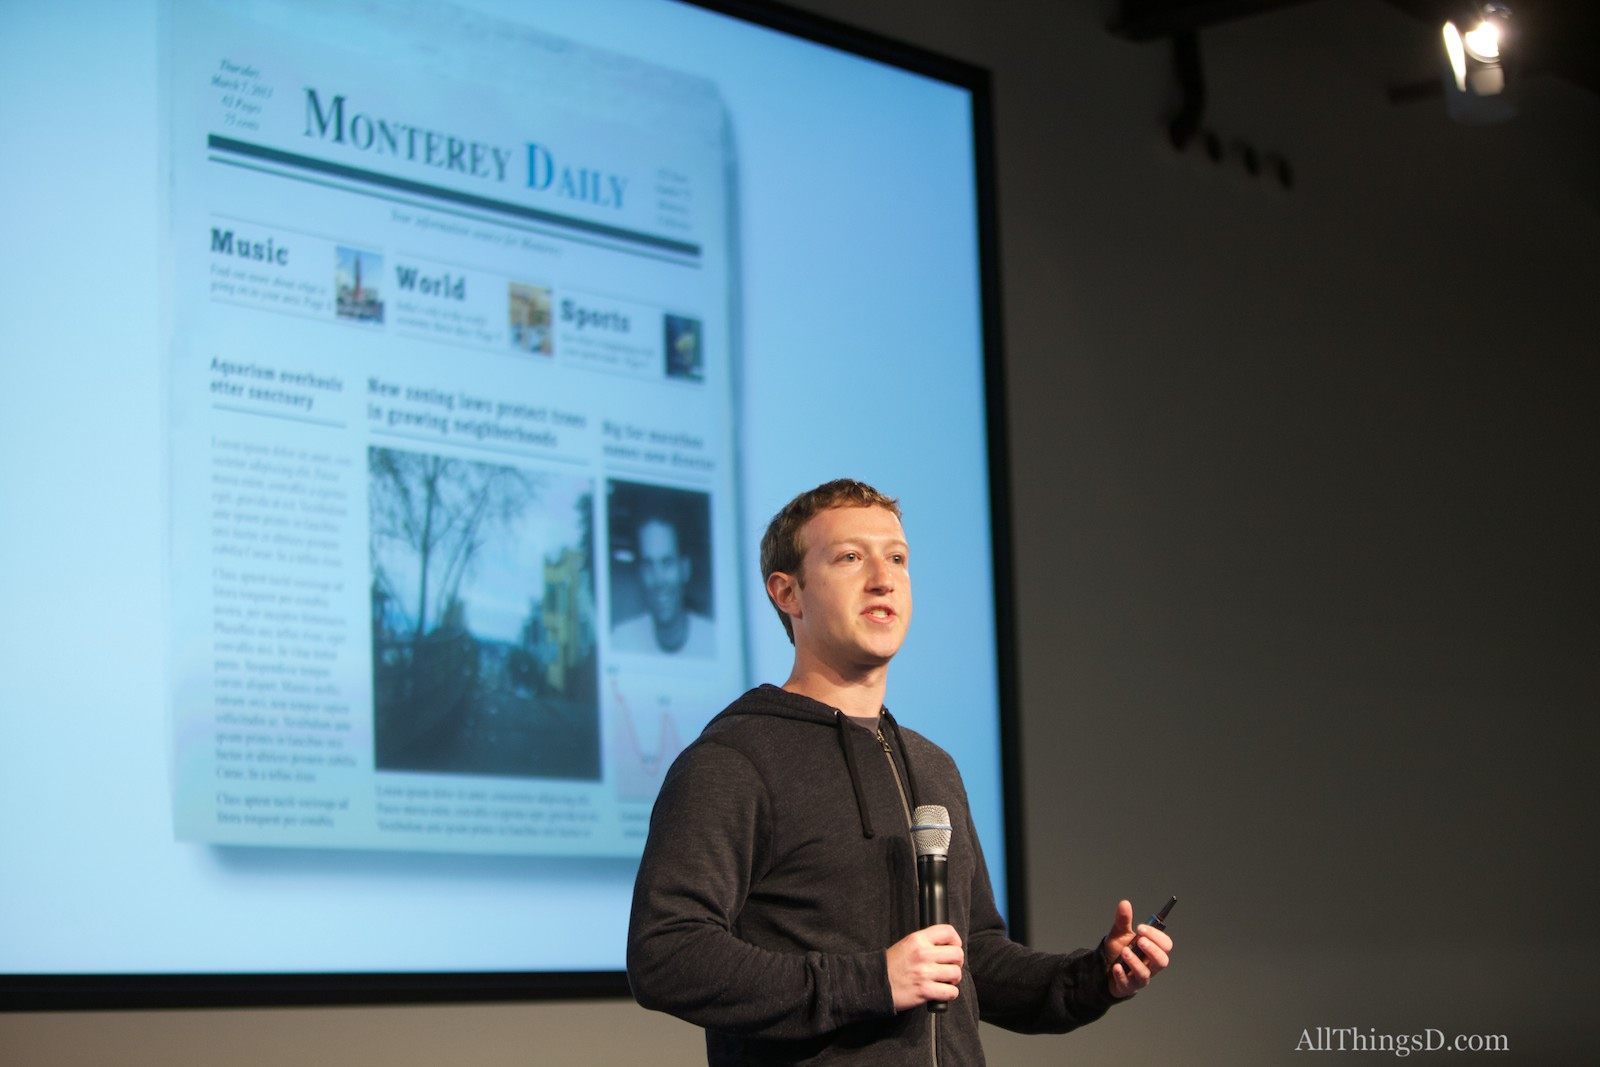 Facebook Wants to Be a Newspaper. Facebook Users Have Their Own Ideas.